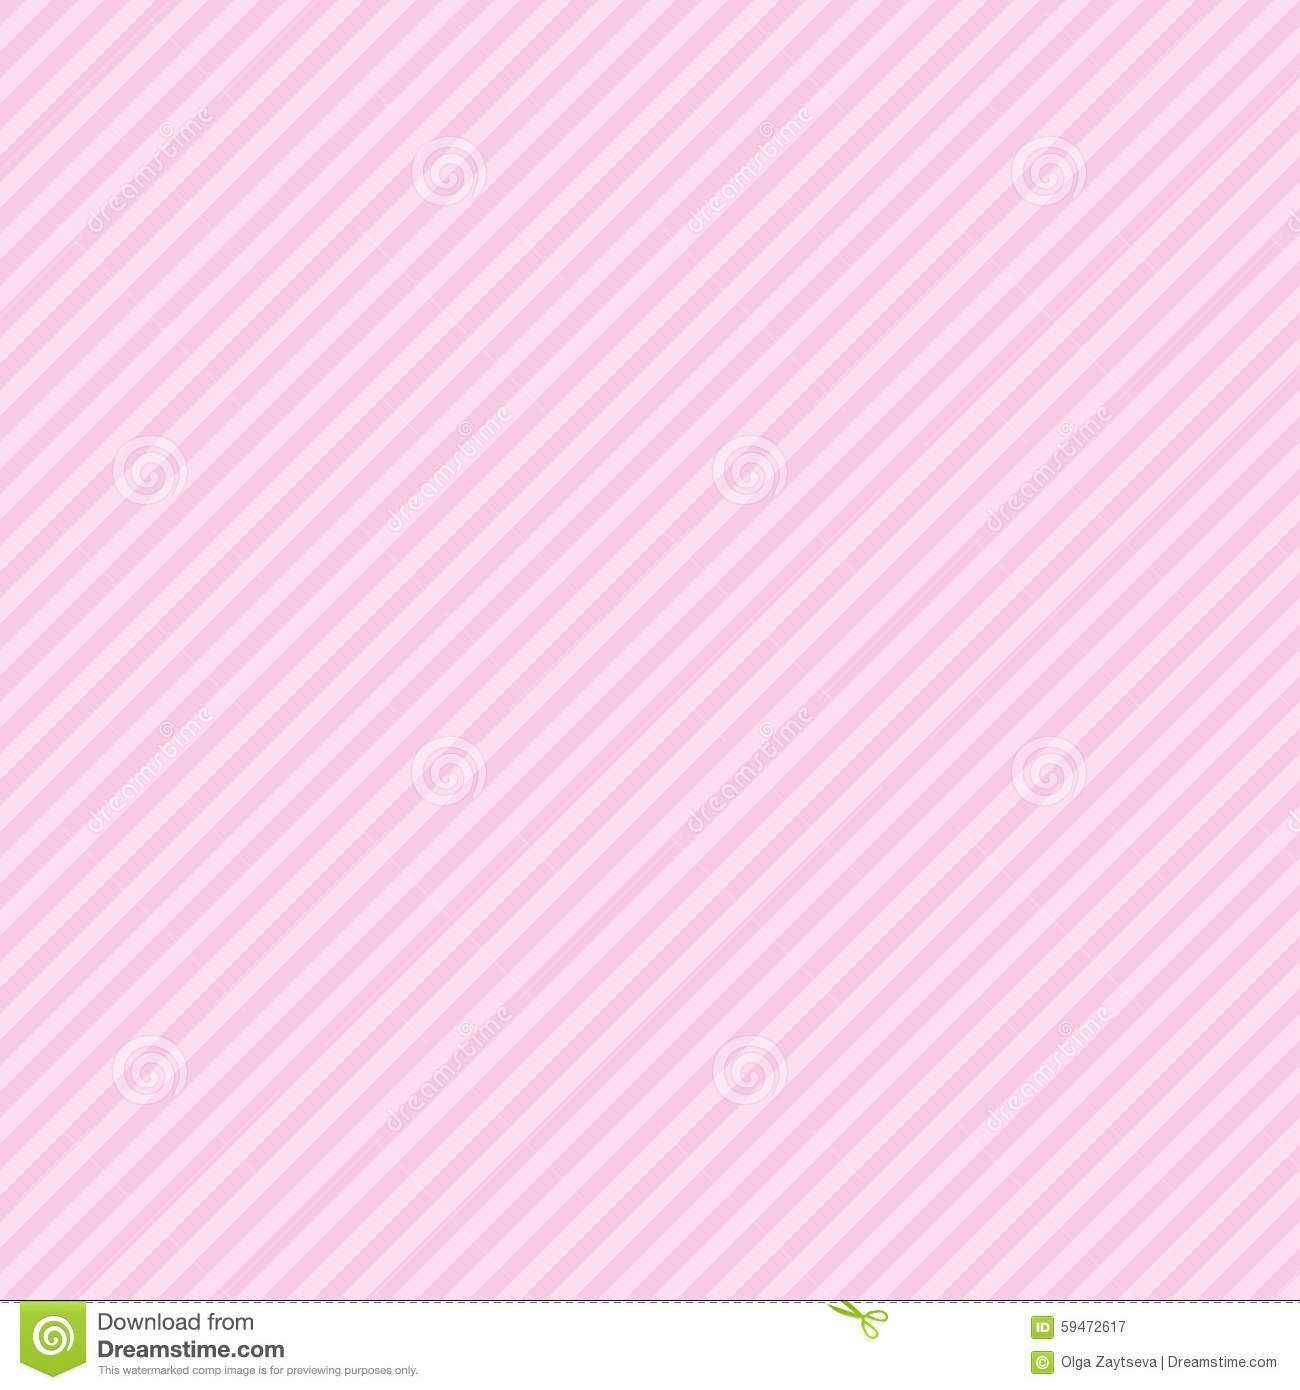 Pastel pink striped background seamless vector pastel stripes - Abstract Pink Diagonal Striped Background Stock